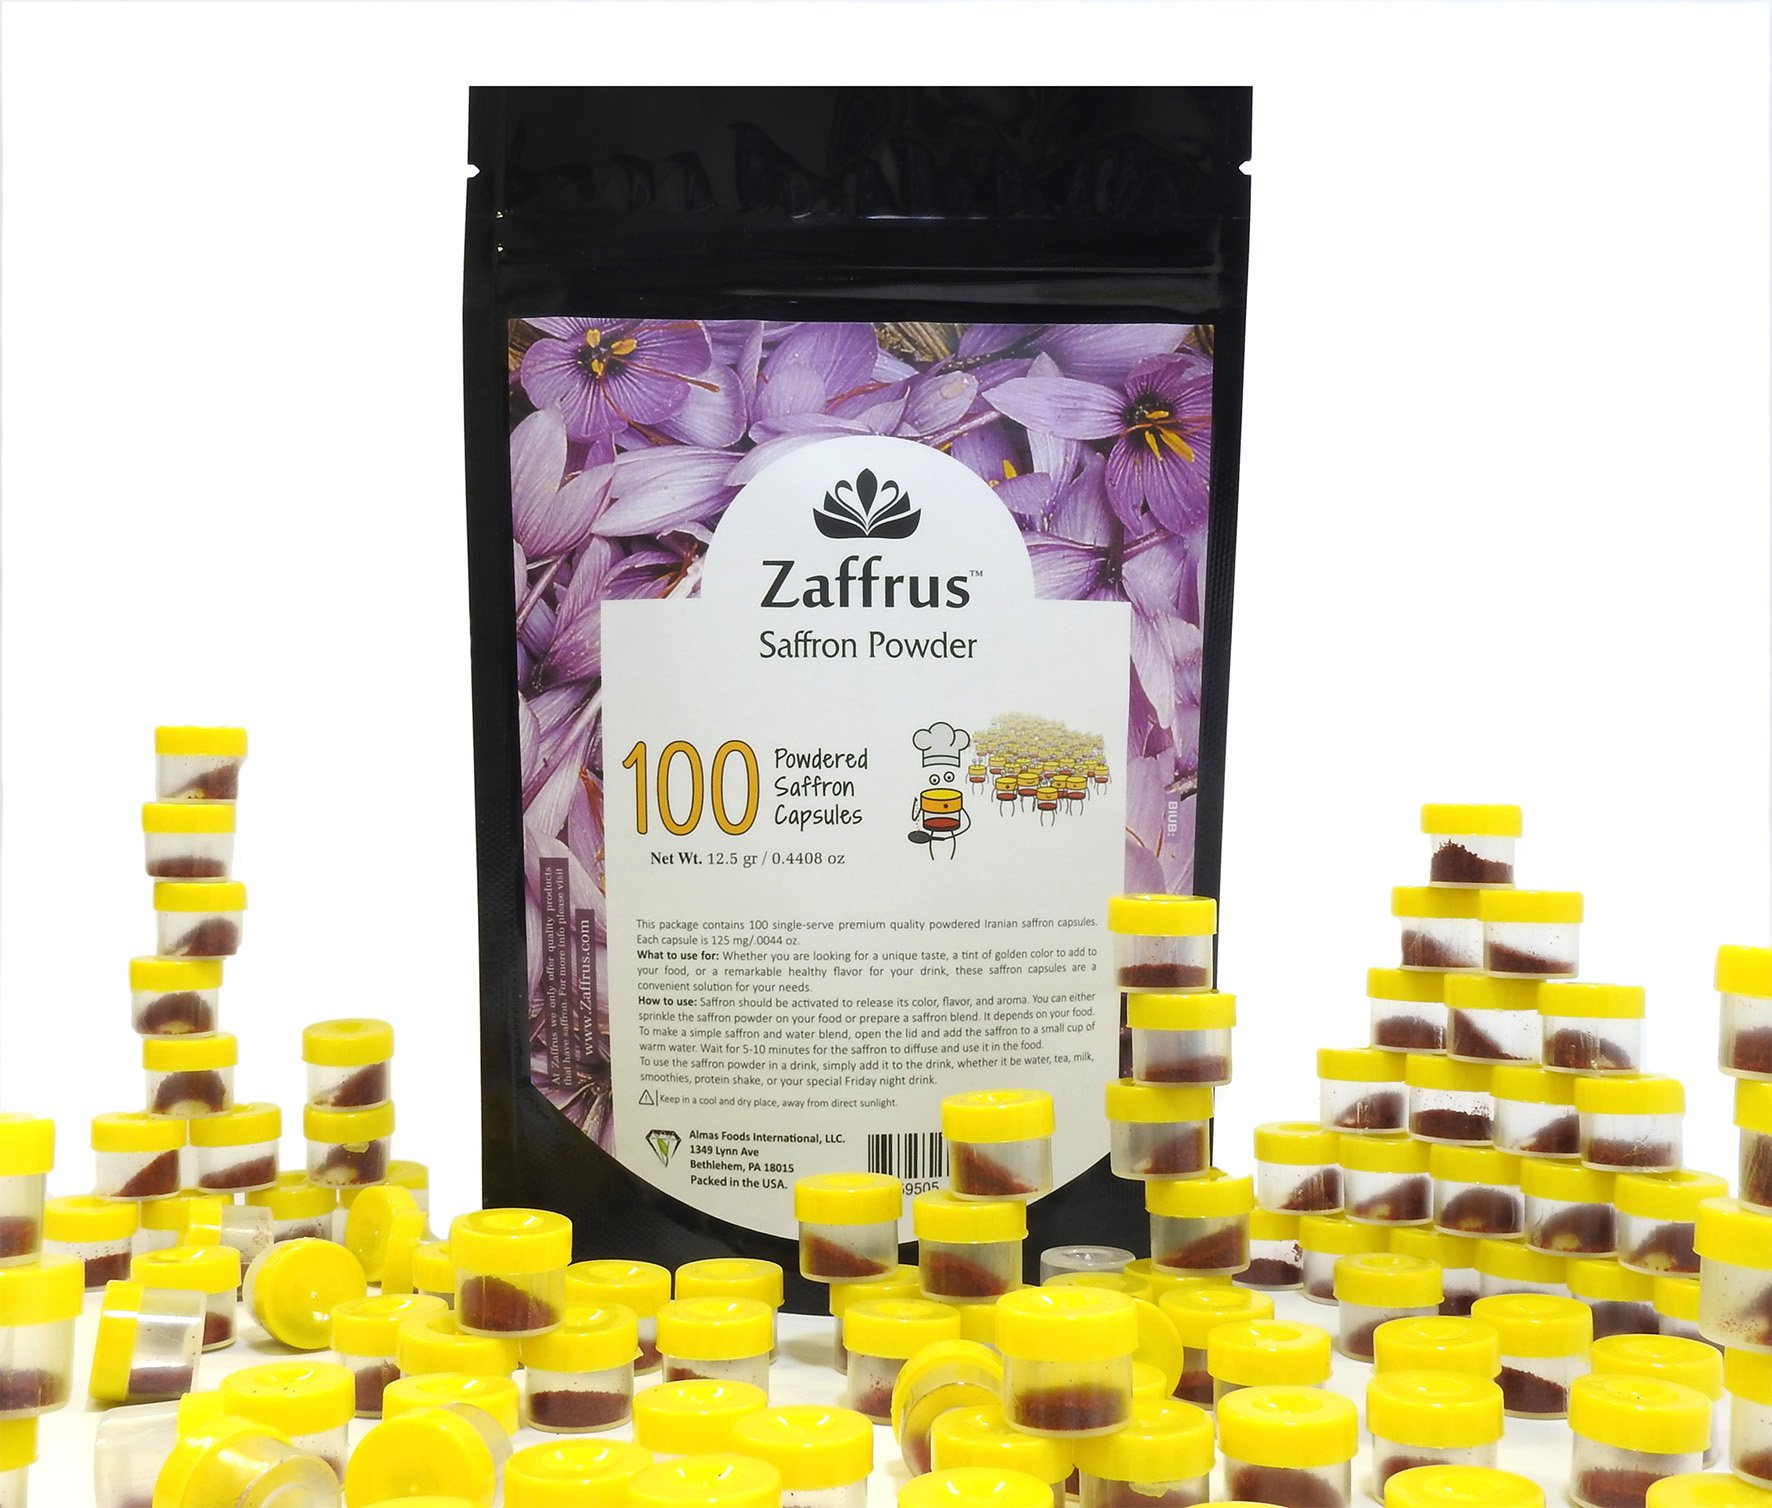 Zaffrus - Premium Saffron Powder for Cooking/Gym-Goers/Specialty Drinks Fans - Pack of 100 (12.5 gr/.4408 oz)